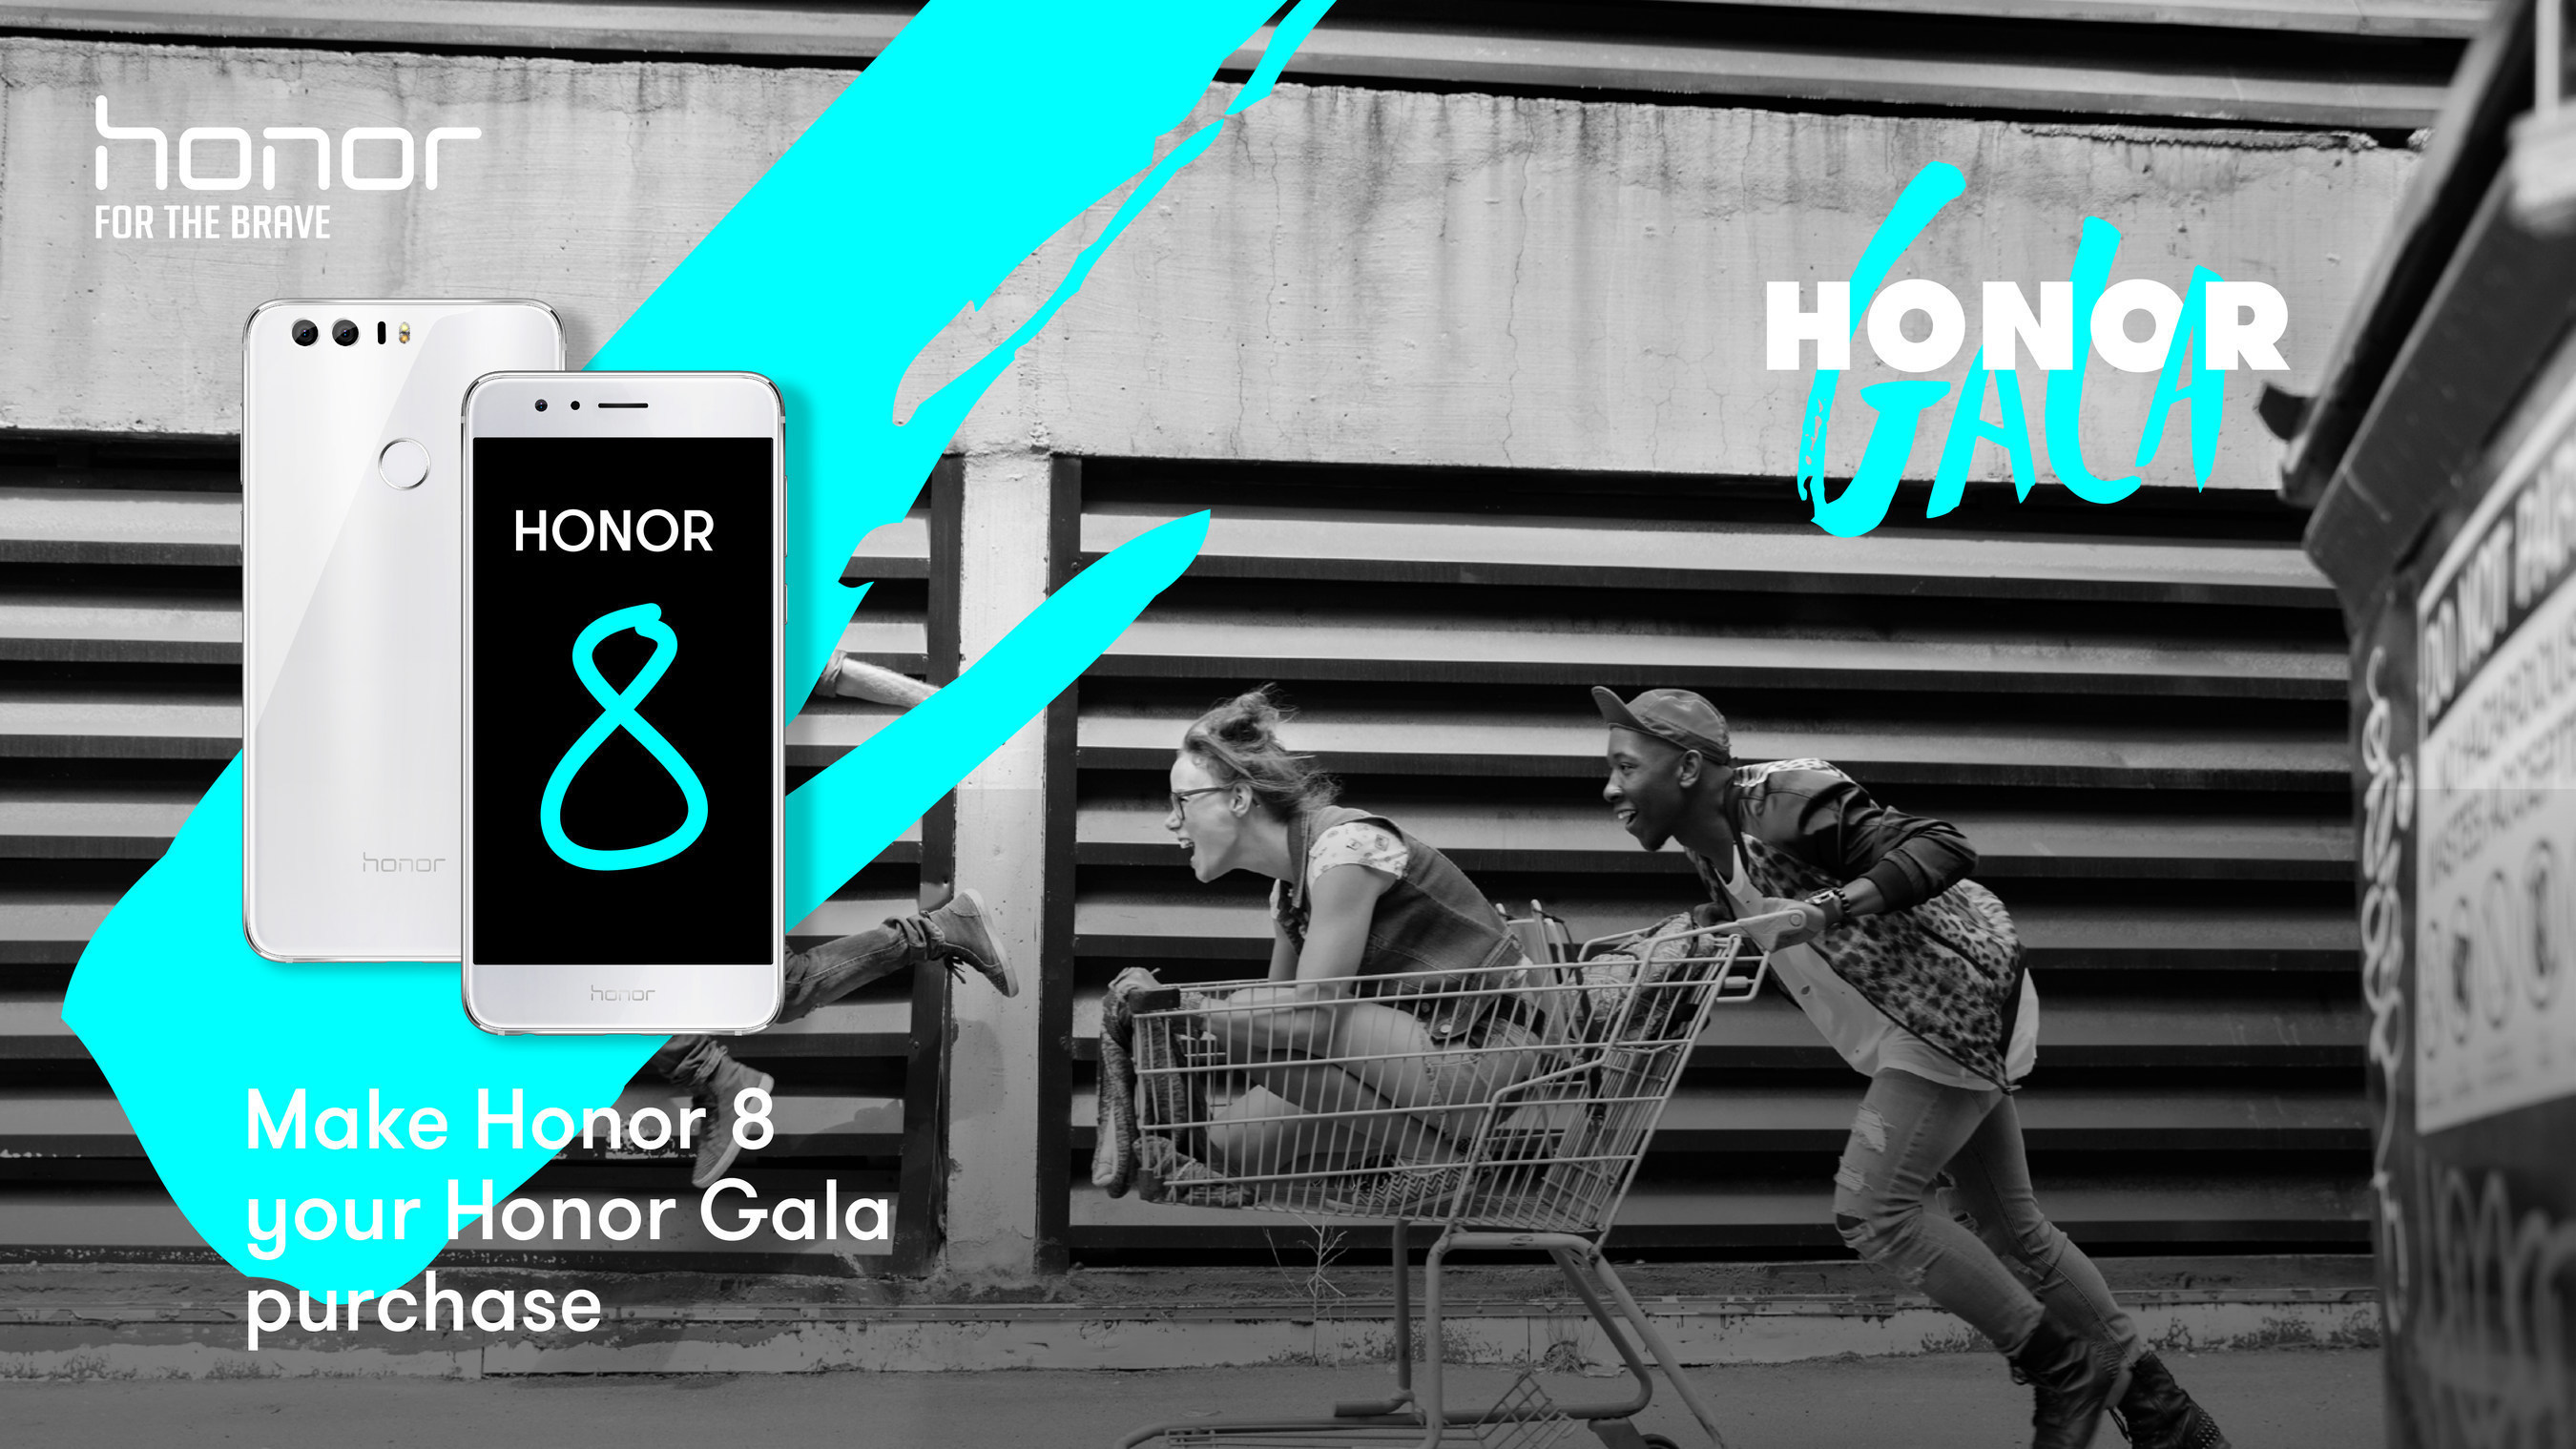 Honor Gala Sales - make Honor 8 your Honor Gala purchase.